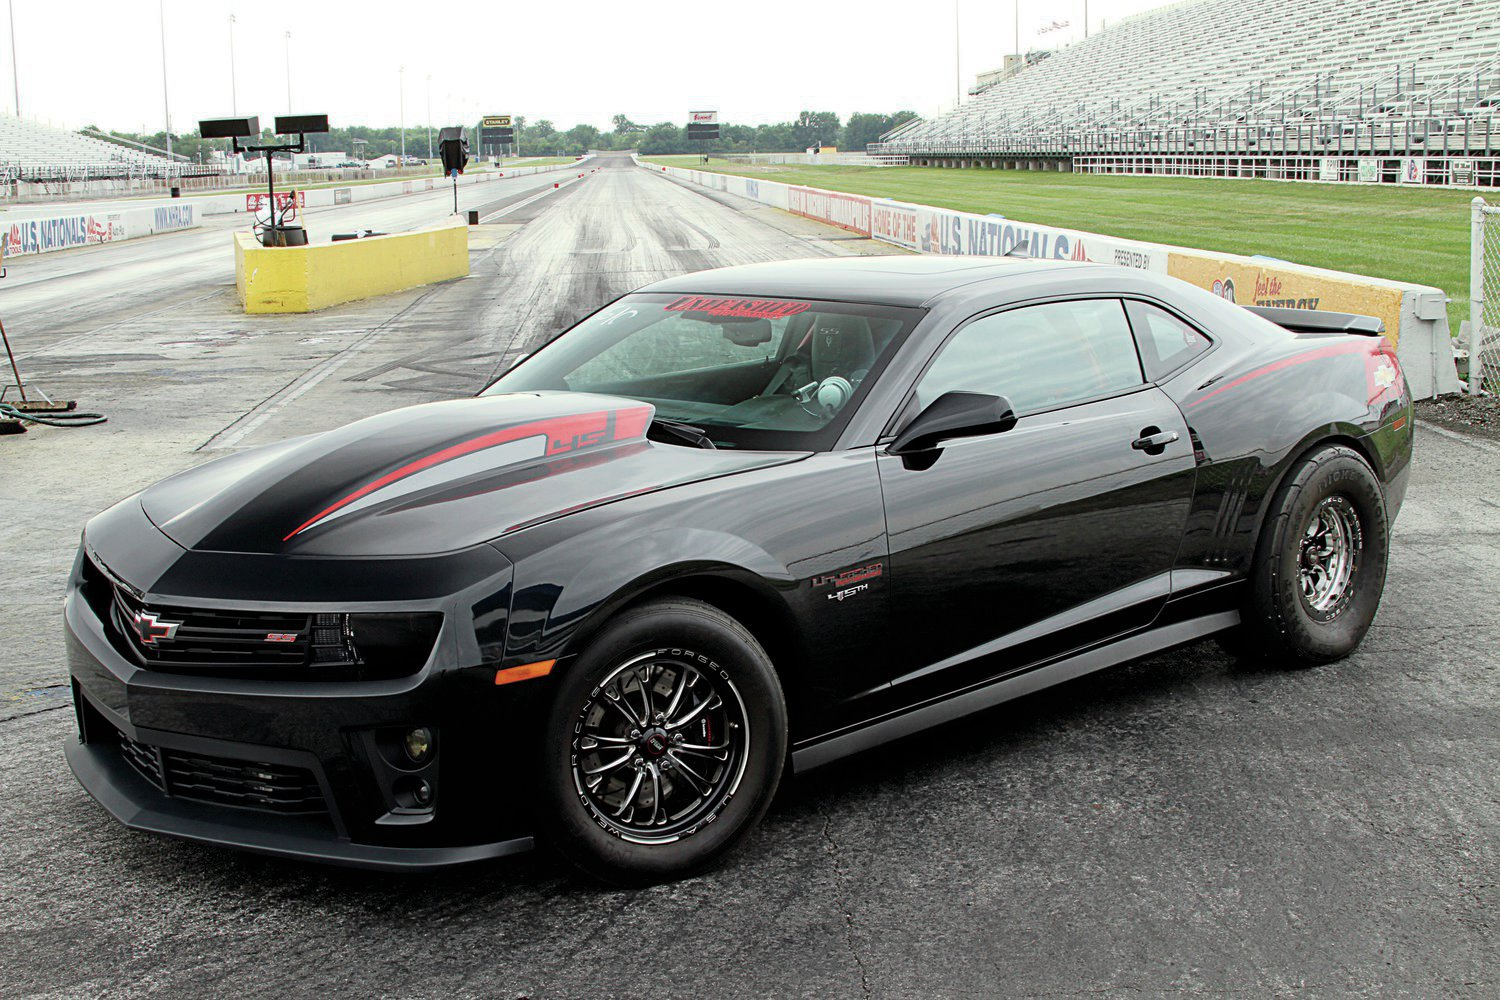 2012 Chevrolet Camaro Ss 45th Anniversary Edition A